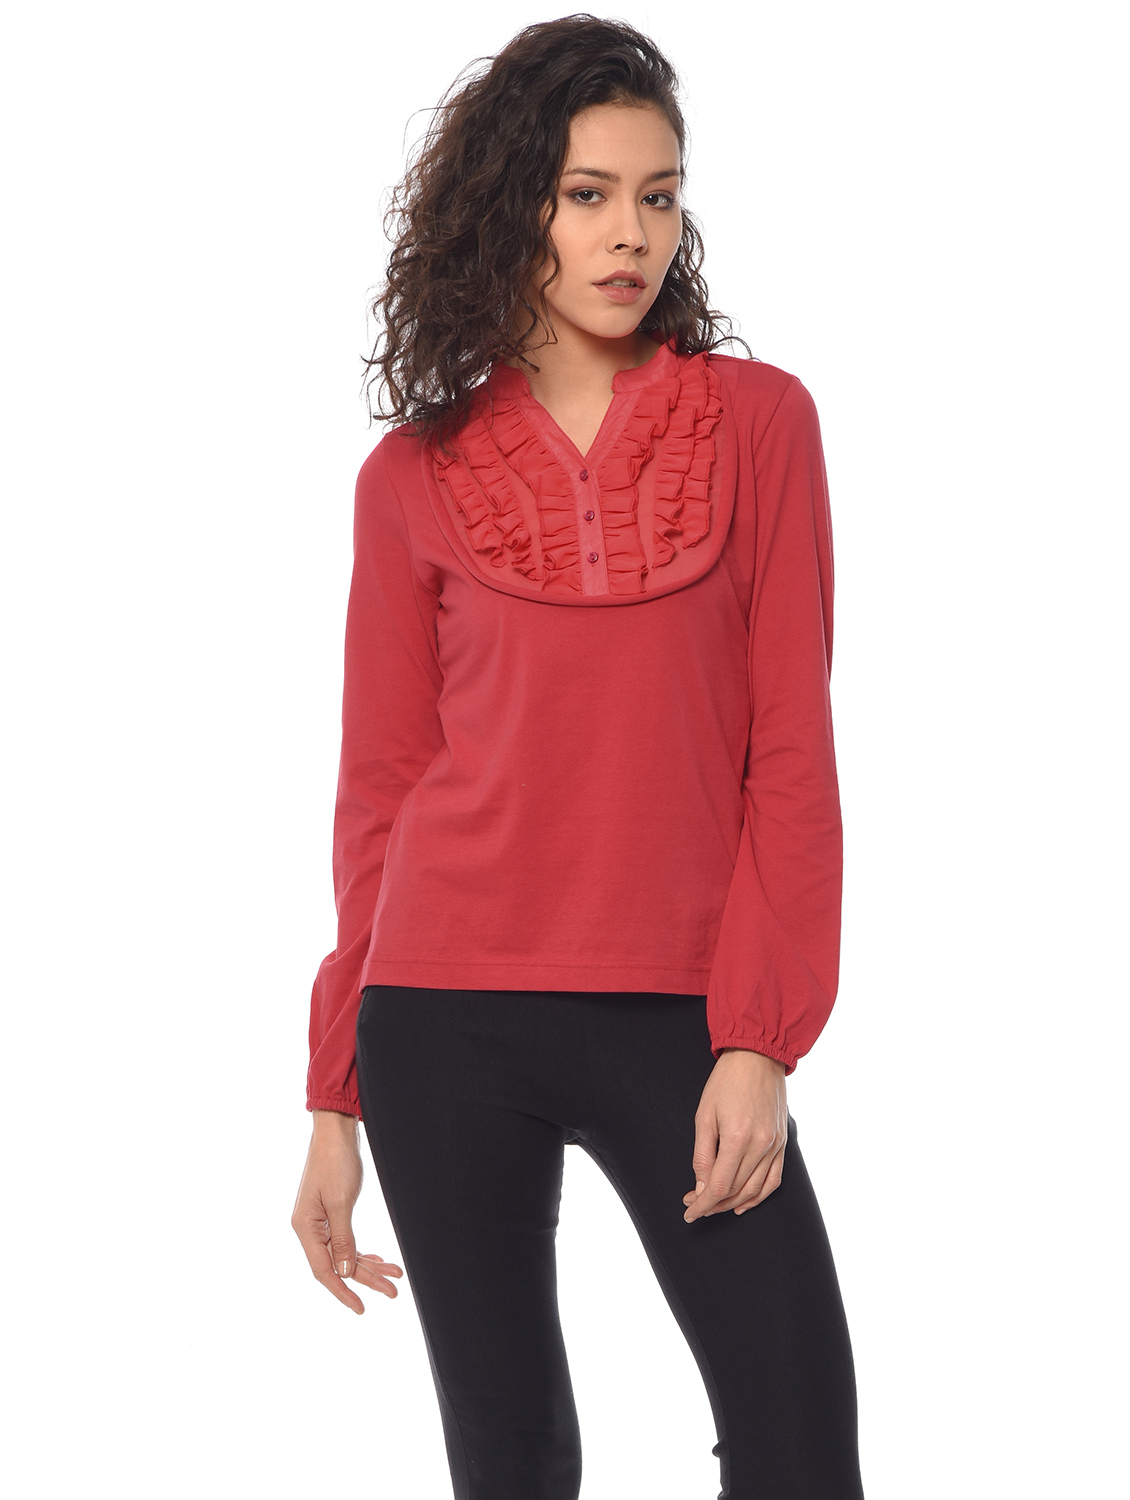 Purys Casual Full Sleeve Solid Women's Red Top